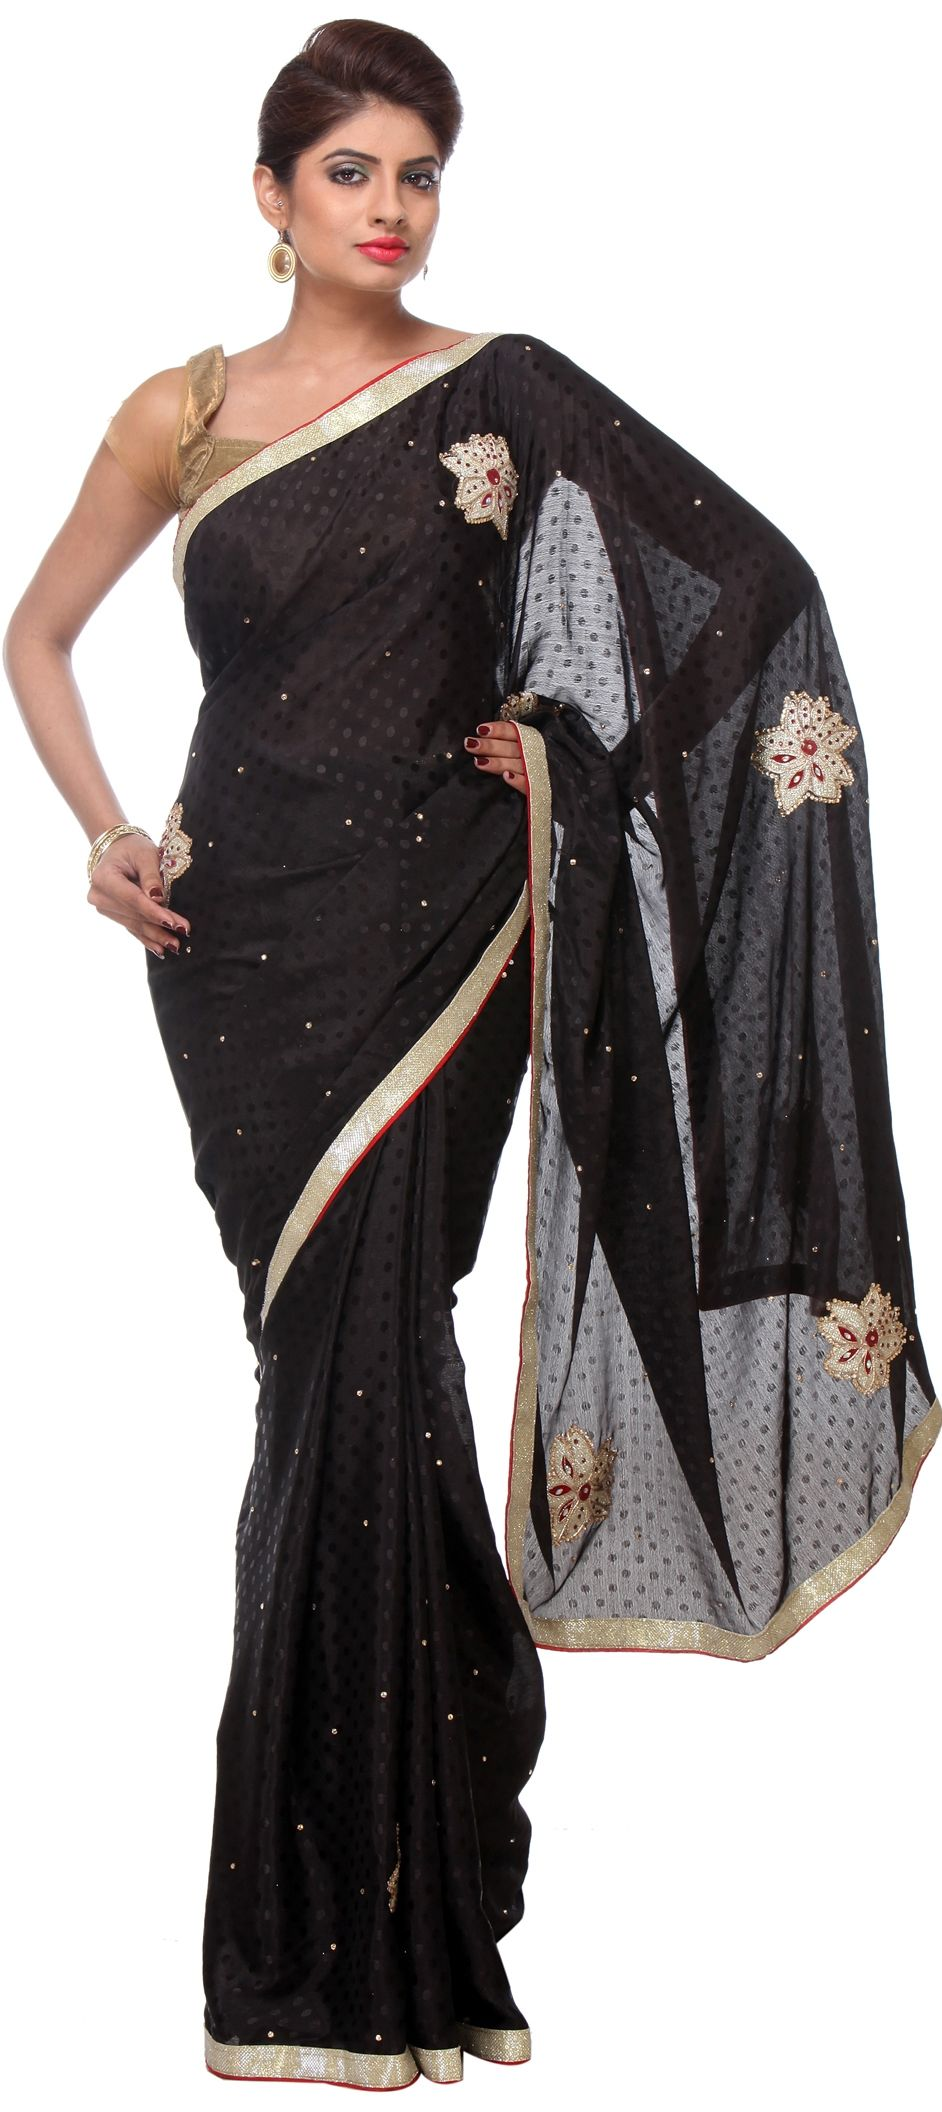 c863c84973 193401: Black and Grey color family Embroidered Sarees, Party Wear ...